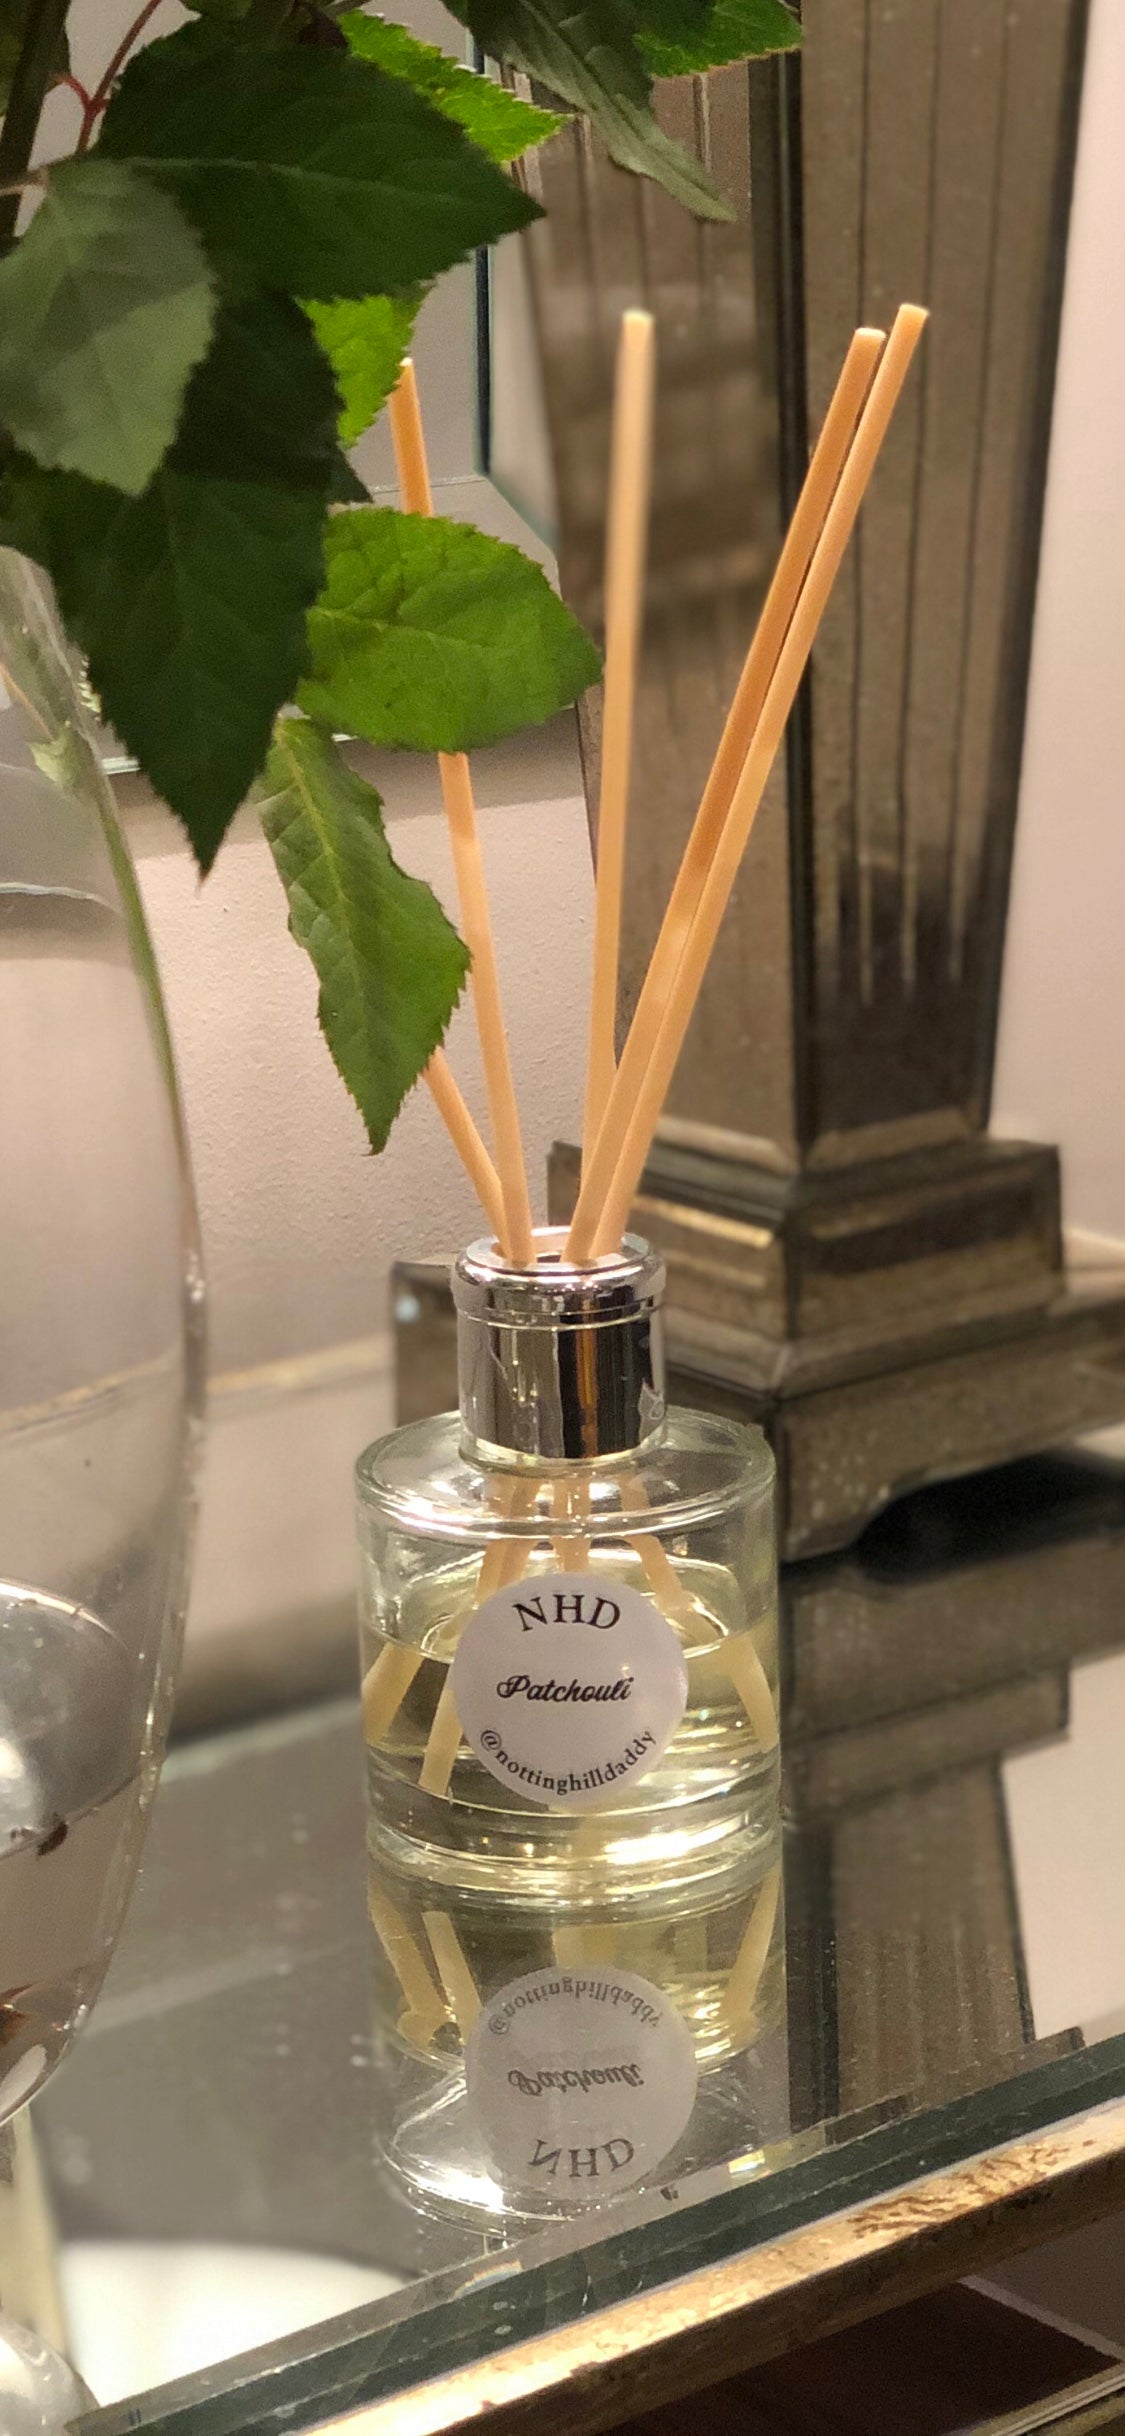 NHD Diffuser - Patchouli